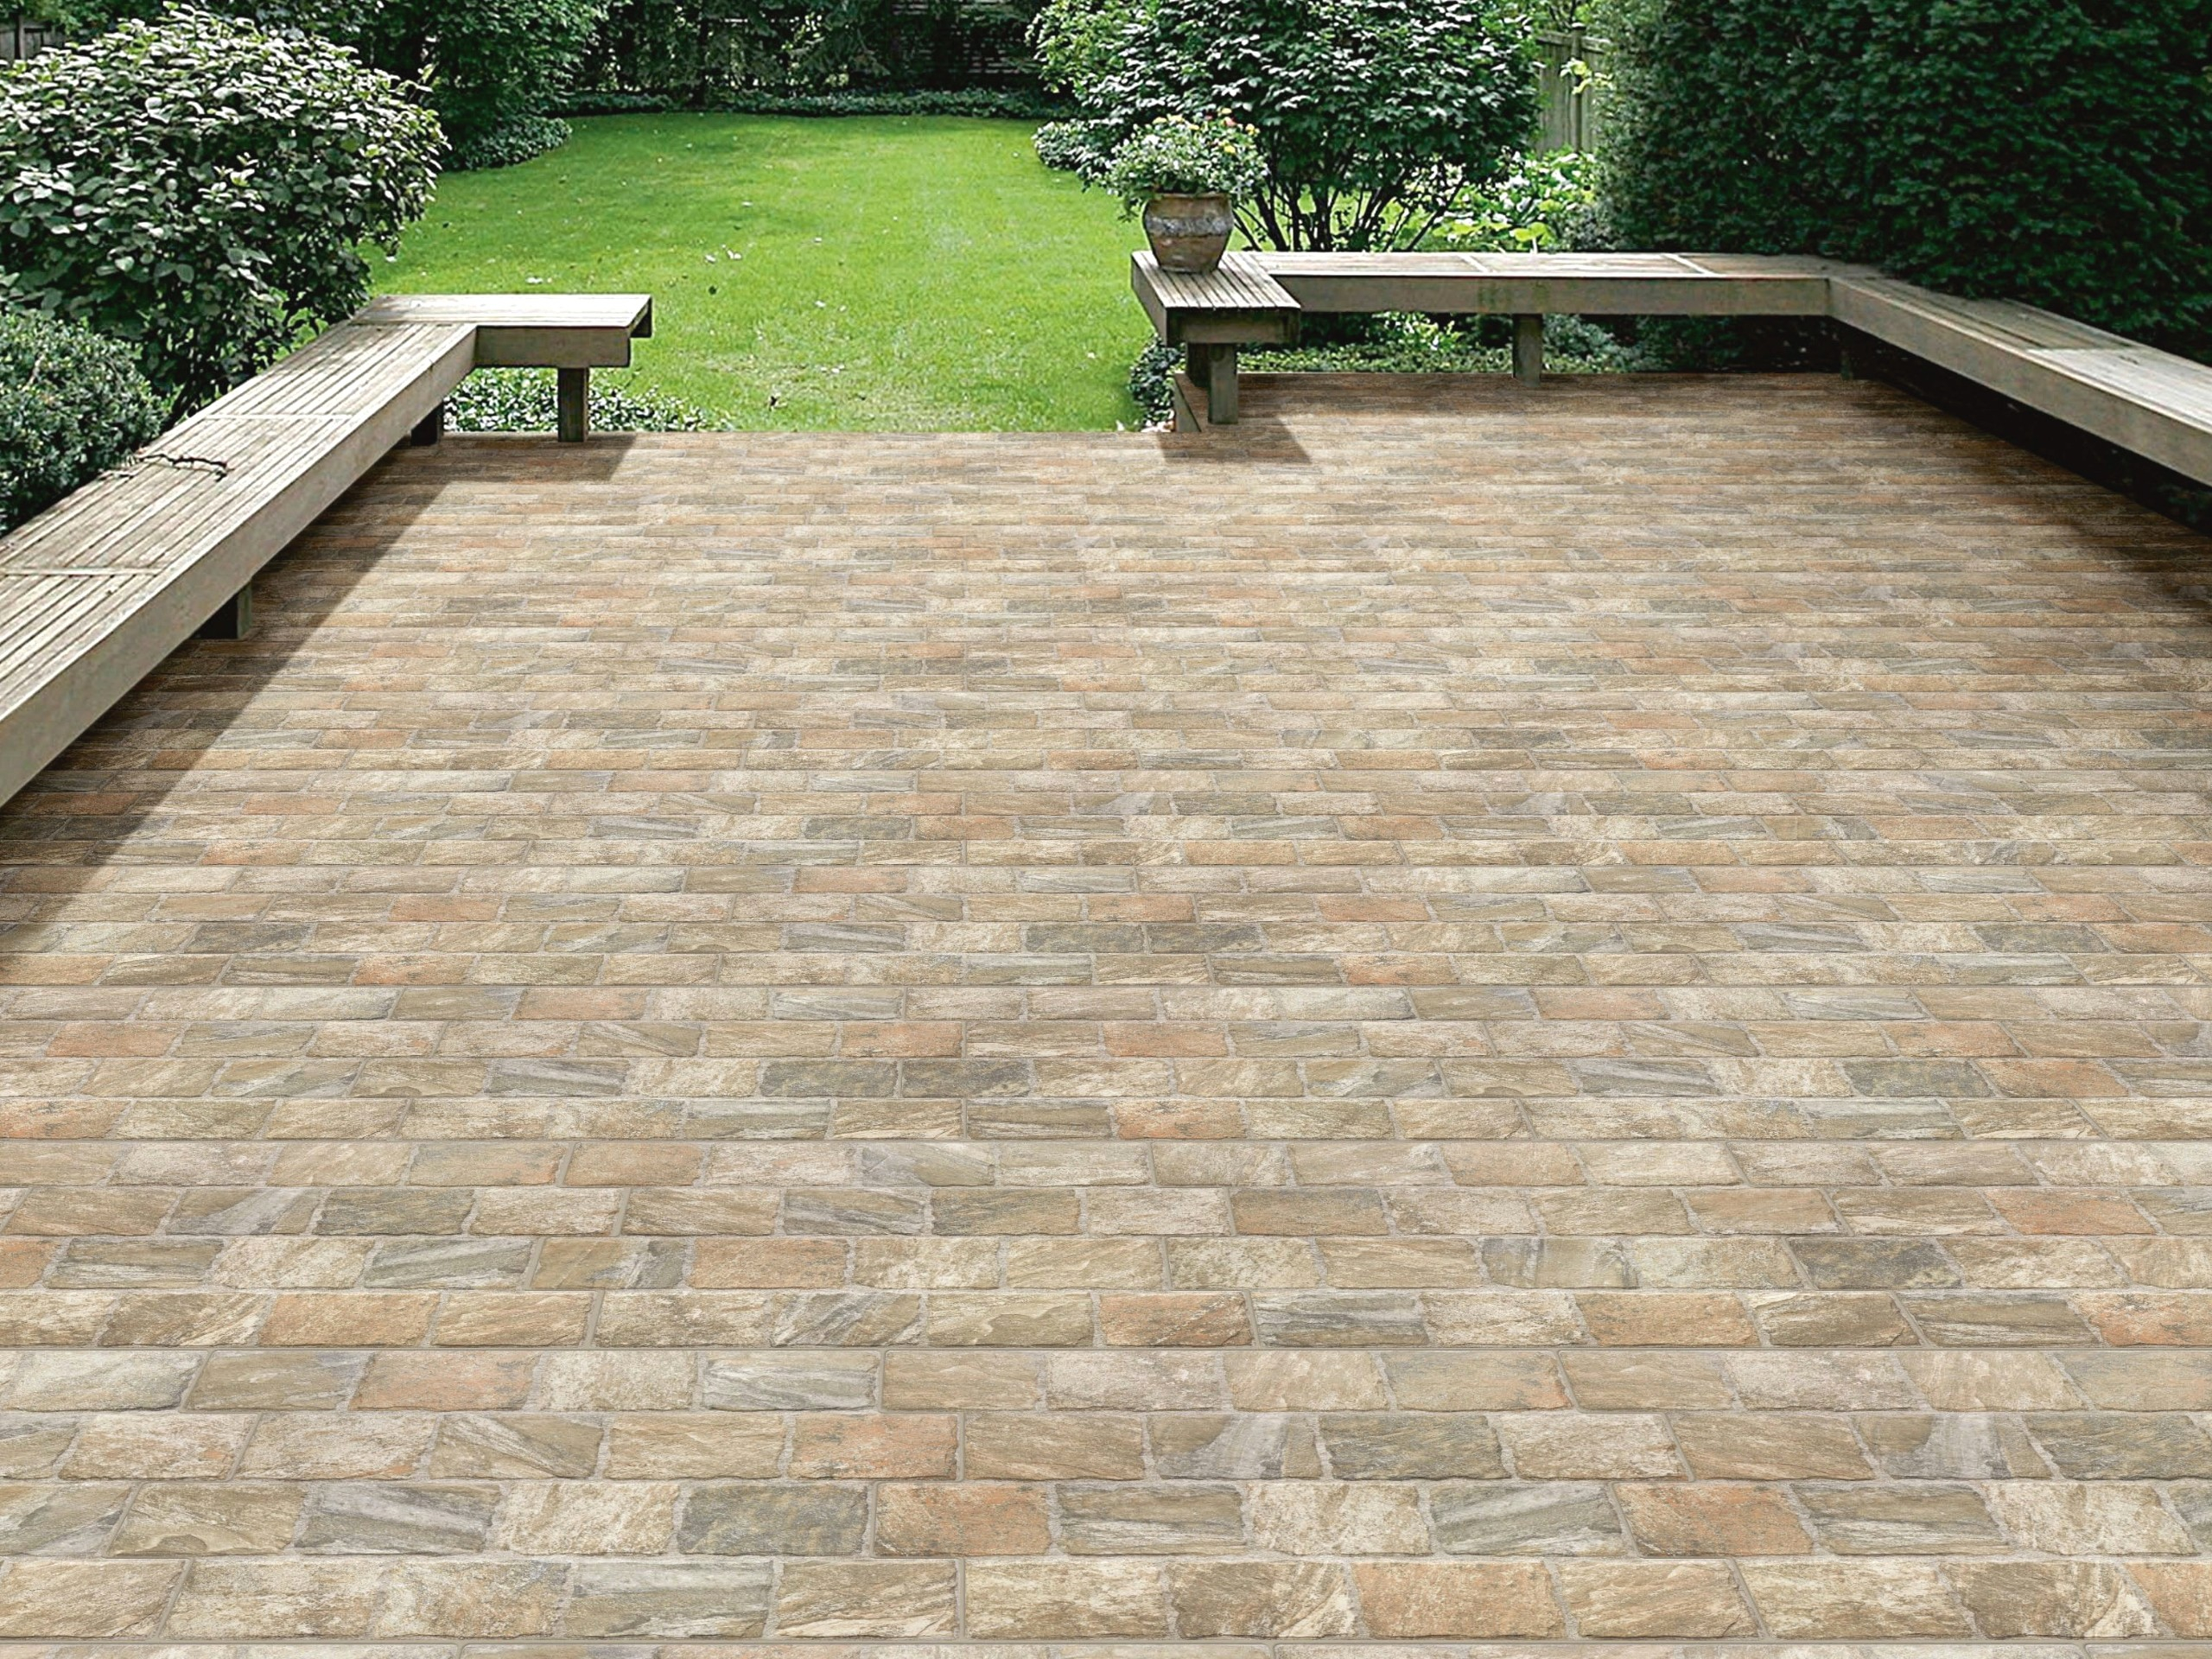 Carrelage Exterieur Brico Depot Dalle Clipsable Brico Depot Best Finest Charmant Carrelage Idees Conception Jardin Idees Conception Jardin - Dalle Ardoise Jardin Brico Depot